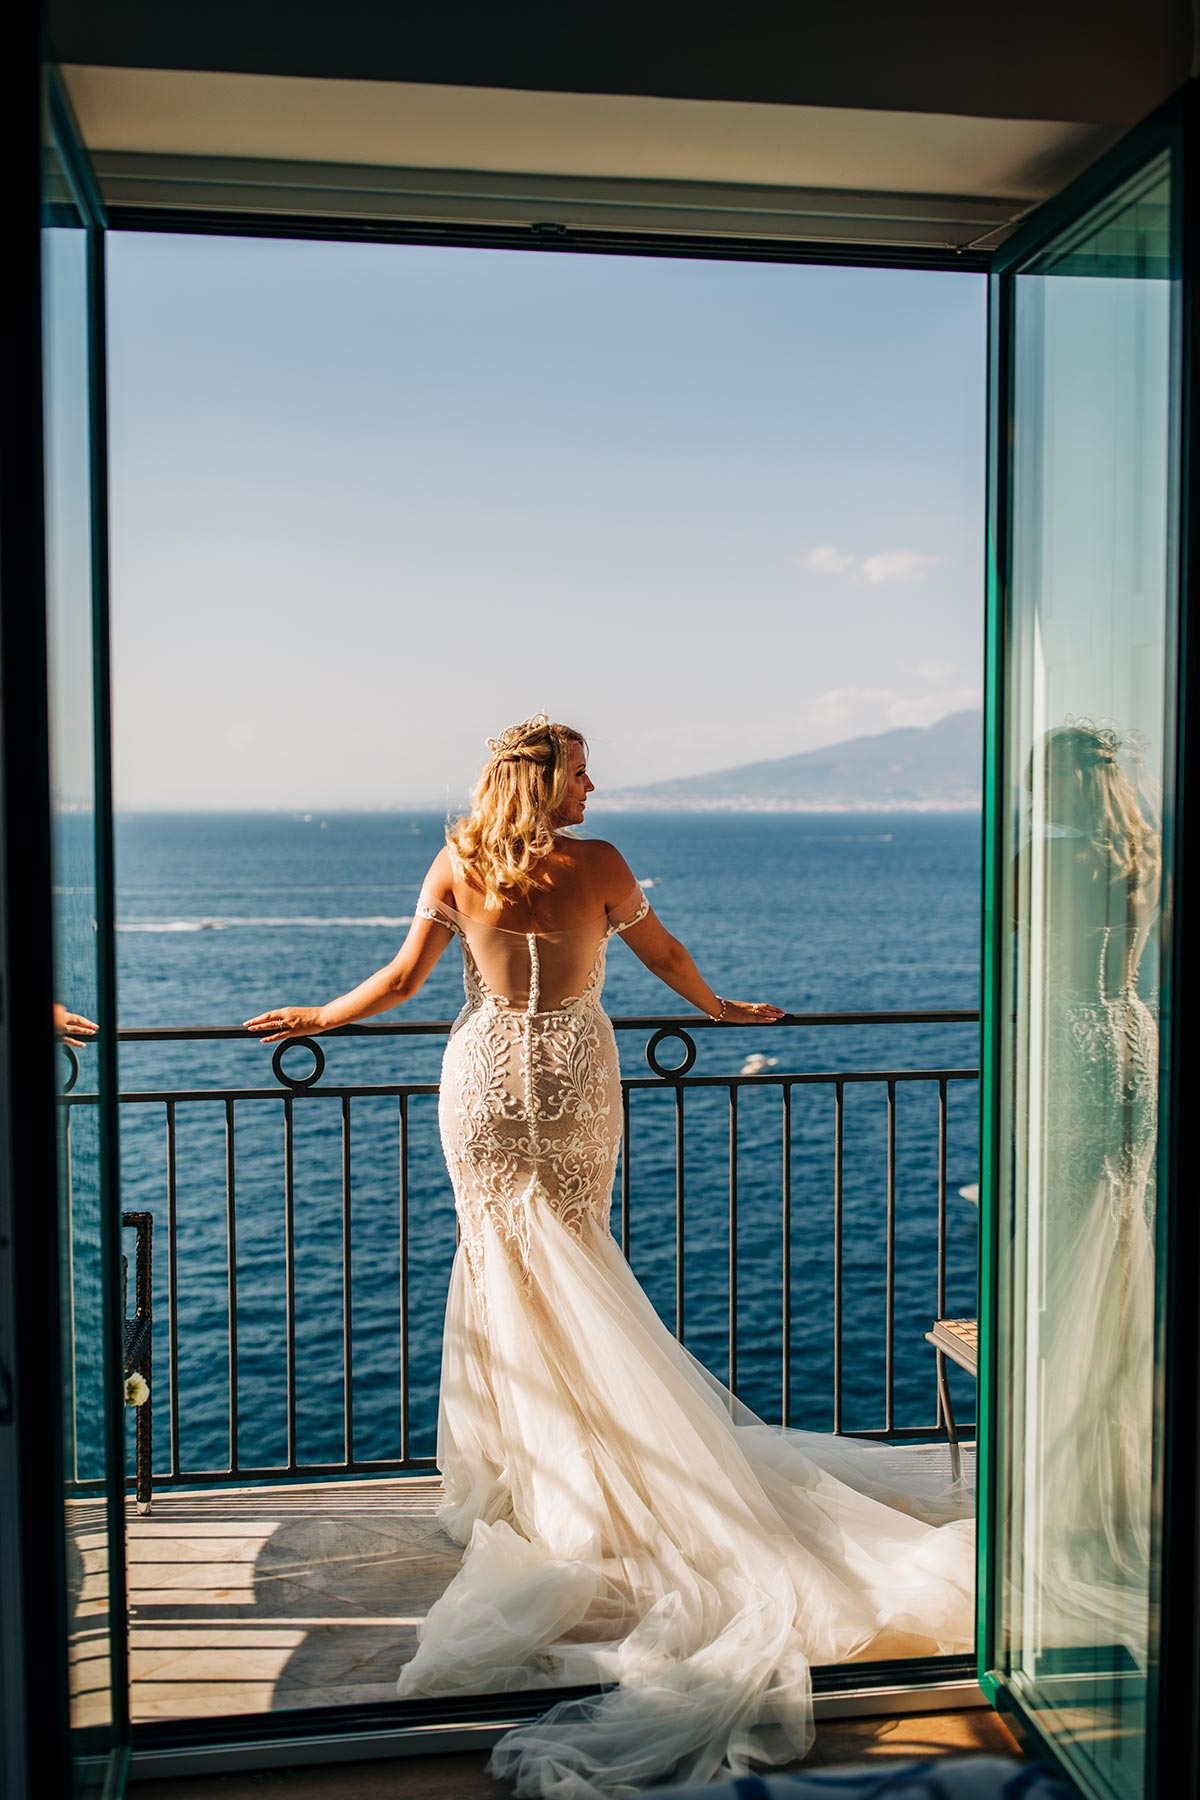 From-USA-to-Sorrento-a-spectacular-wedding-Jannika-Chris